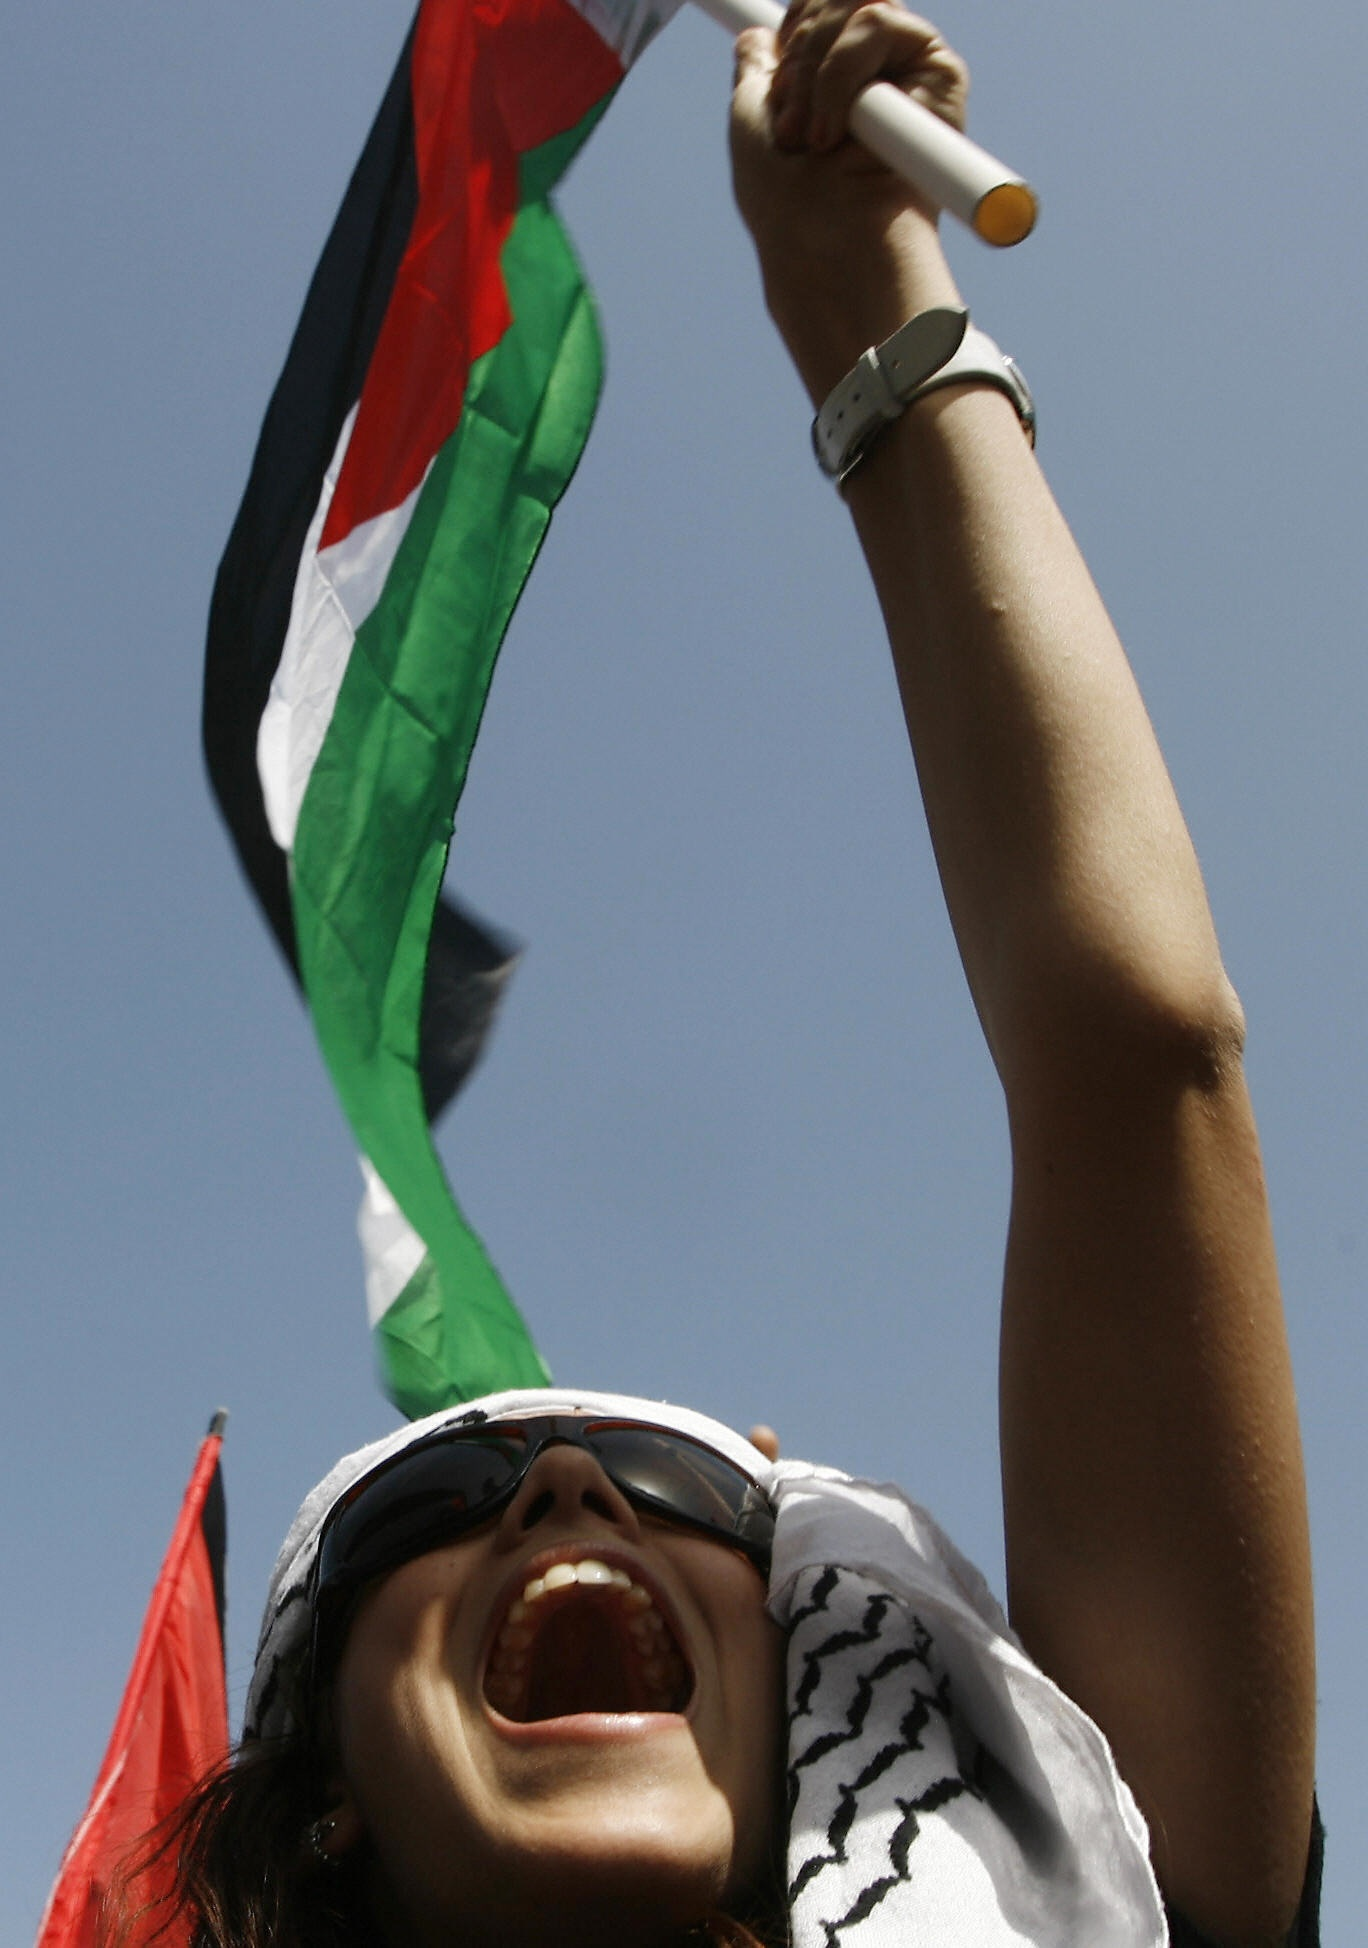 AHMAD GHARABLI/AFP/Getty Images. An Arab-Israeli woman waves a Palestinian flag during a demonstrationg on April 29, 2009 to demand the right of return to the lands from which Palestinians were chased in 1948 on the site of al-Kafrayn, an Arab village among the more than 500 that were razed by Israeli forces at the time of the creation of the Jewish state. As Israel celebrated its 61st anniversary, the demonstrators marched through a small pine forest and the ruins of the village that was torn to the ground on April 19, 1948. Israel has 1.2 million Arab citizens, the descendants of the 160,000 who remained after the creation of the Jewish state while tens of thousands of others fled into exile.